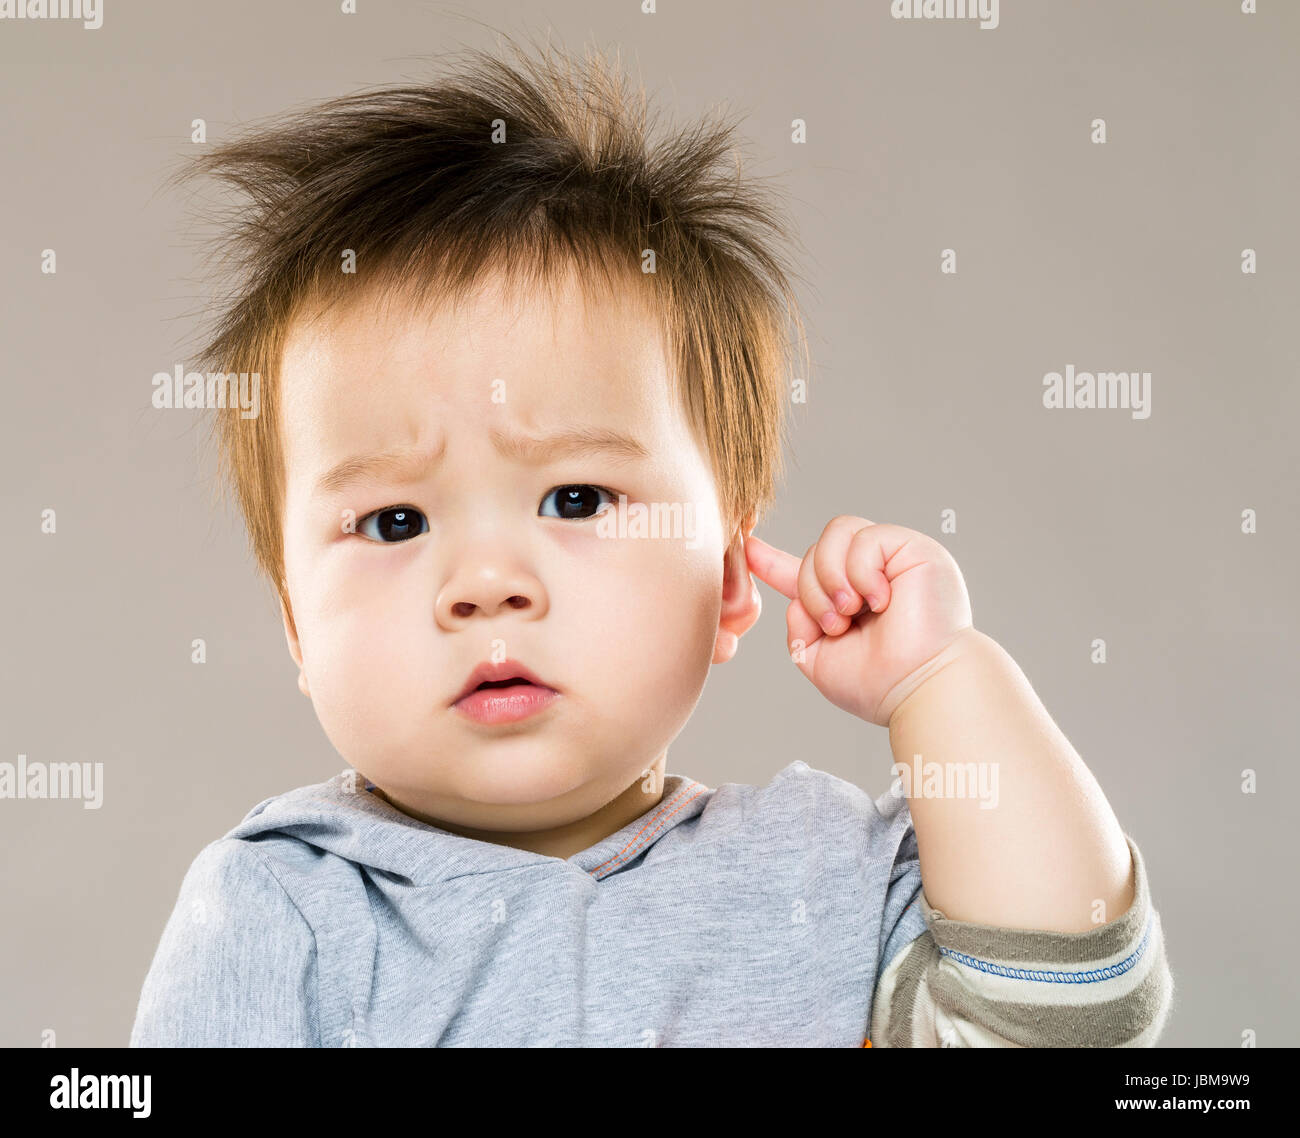 Baby boy touch his ear - Stock Image